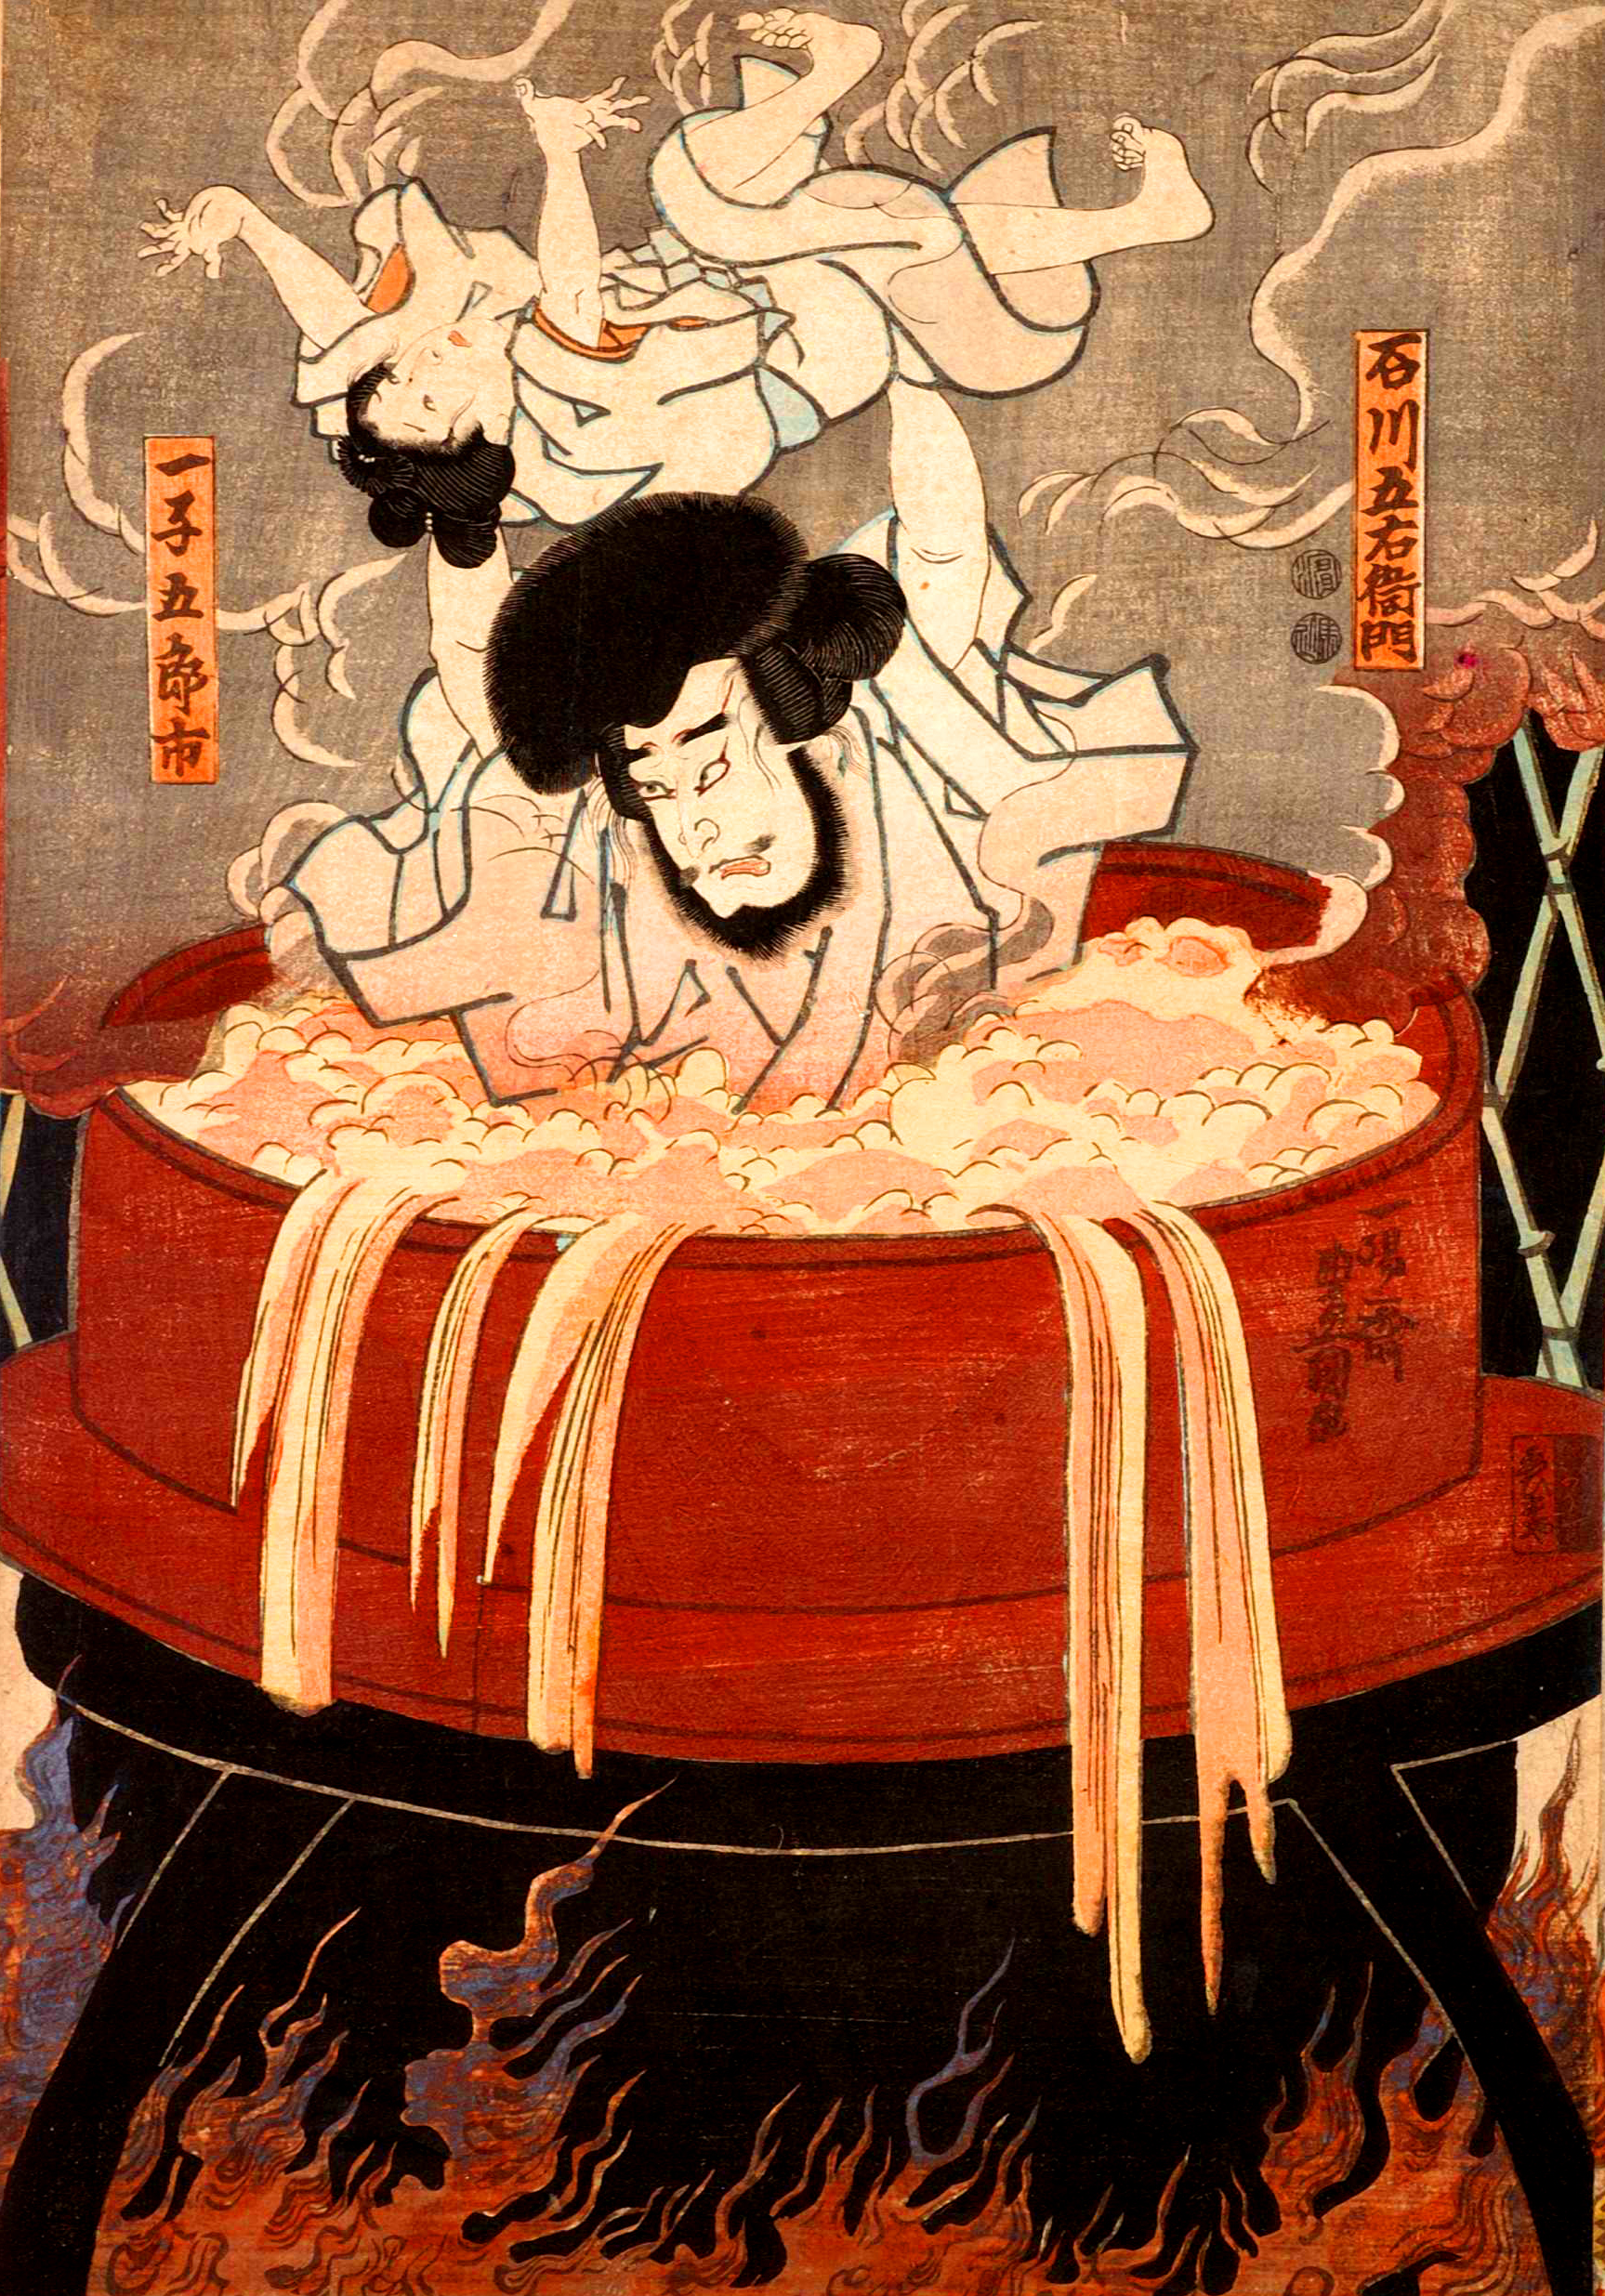 http://upload.wikimedia.org/wikipedia/commons/3/39/Excecution_of_Goemon_Ishikawa.jpg